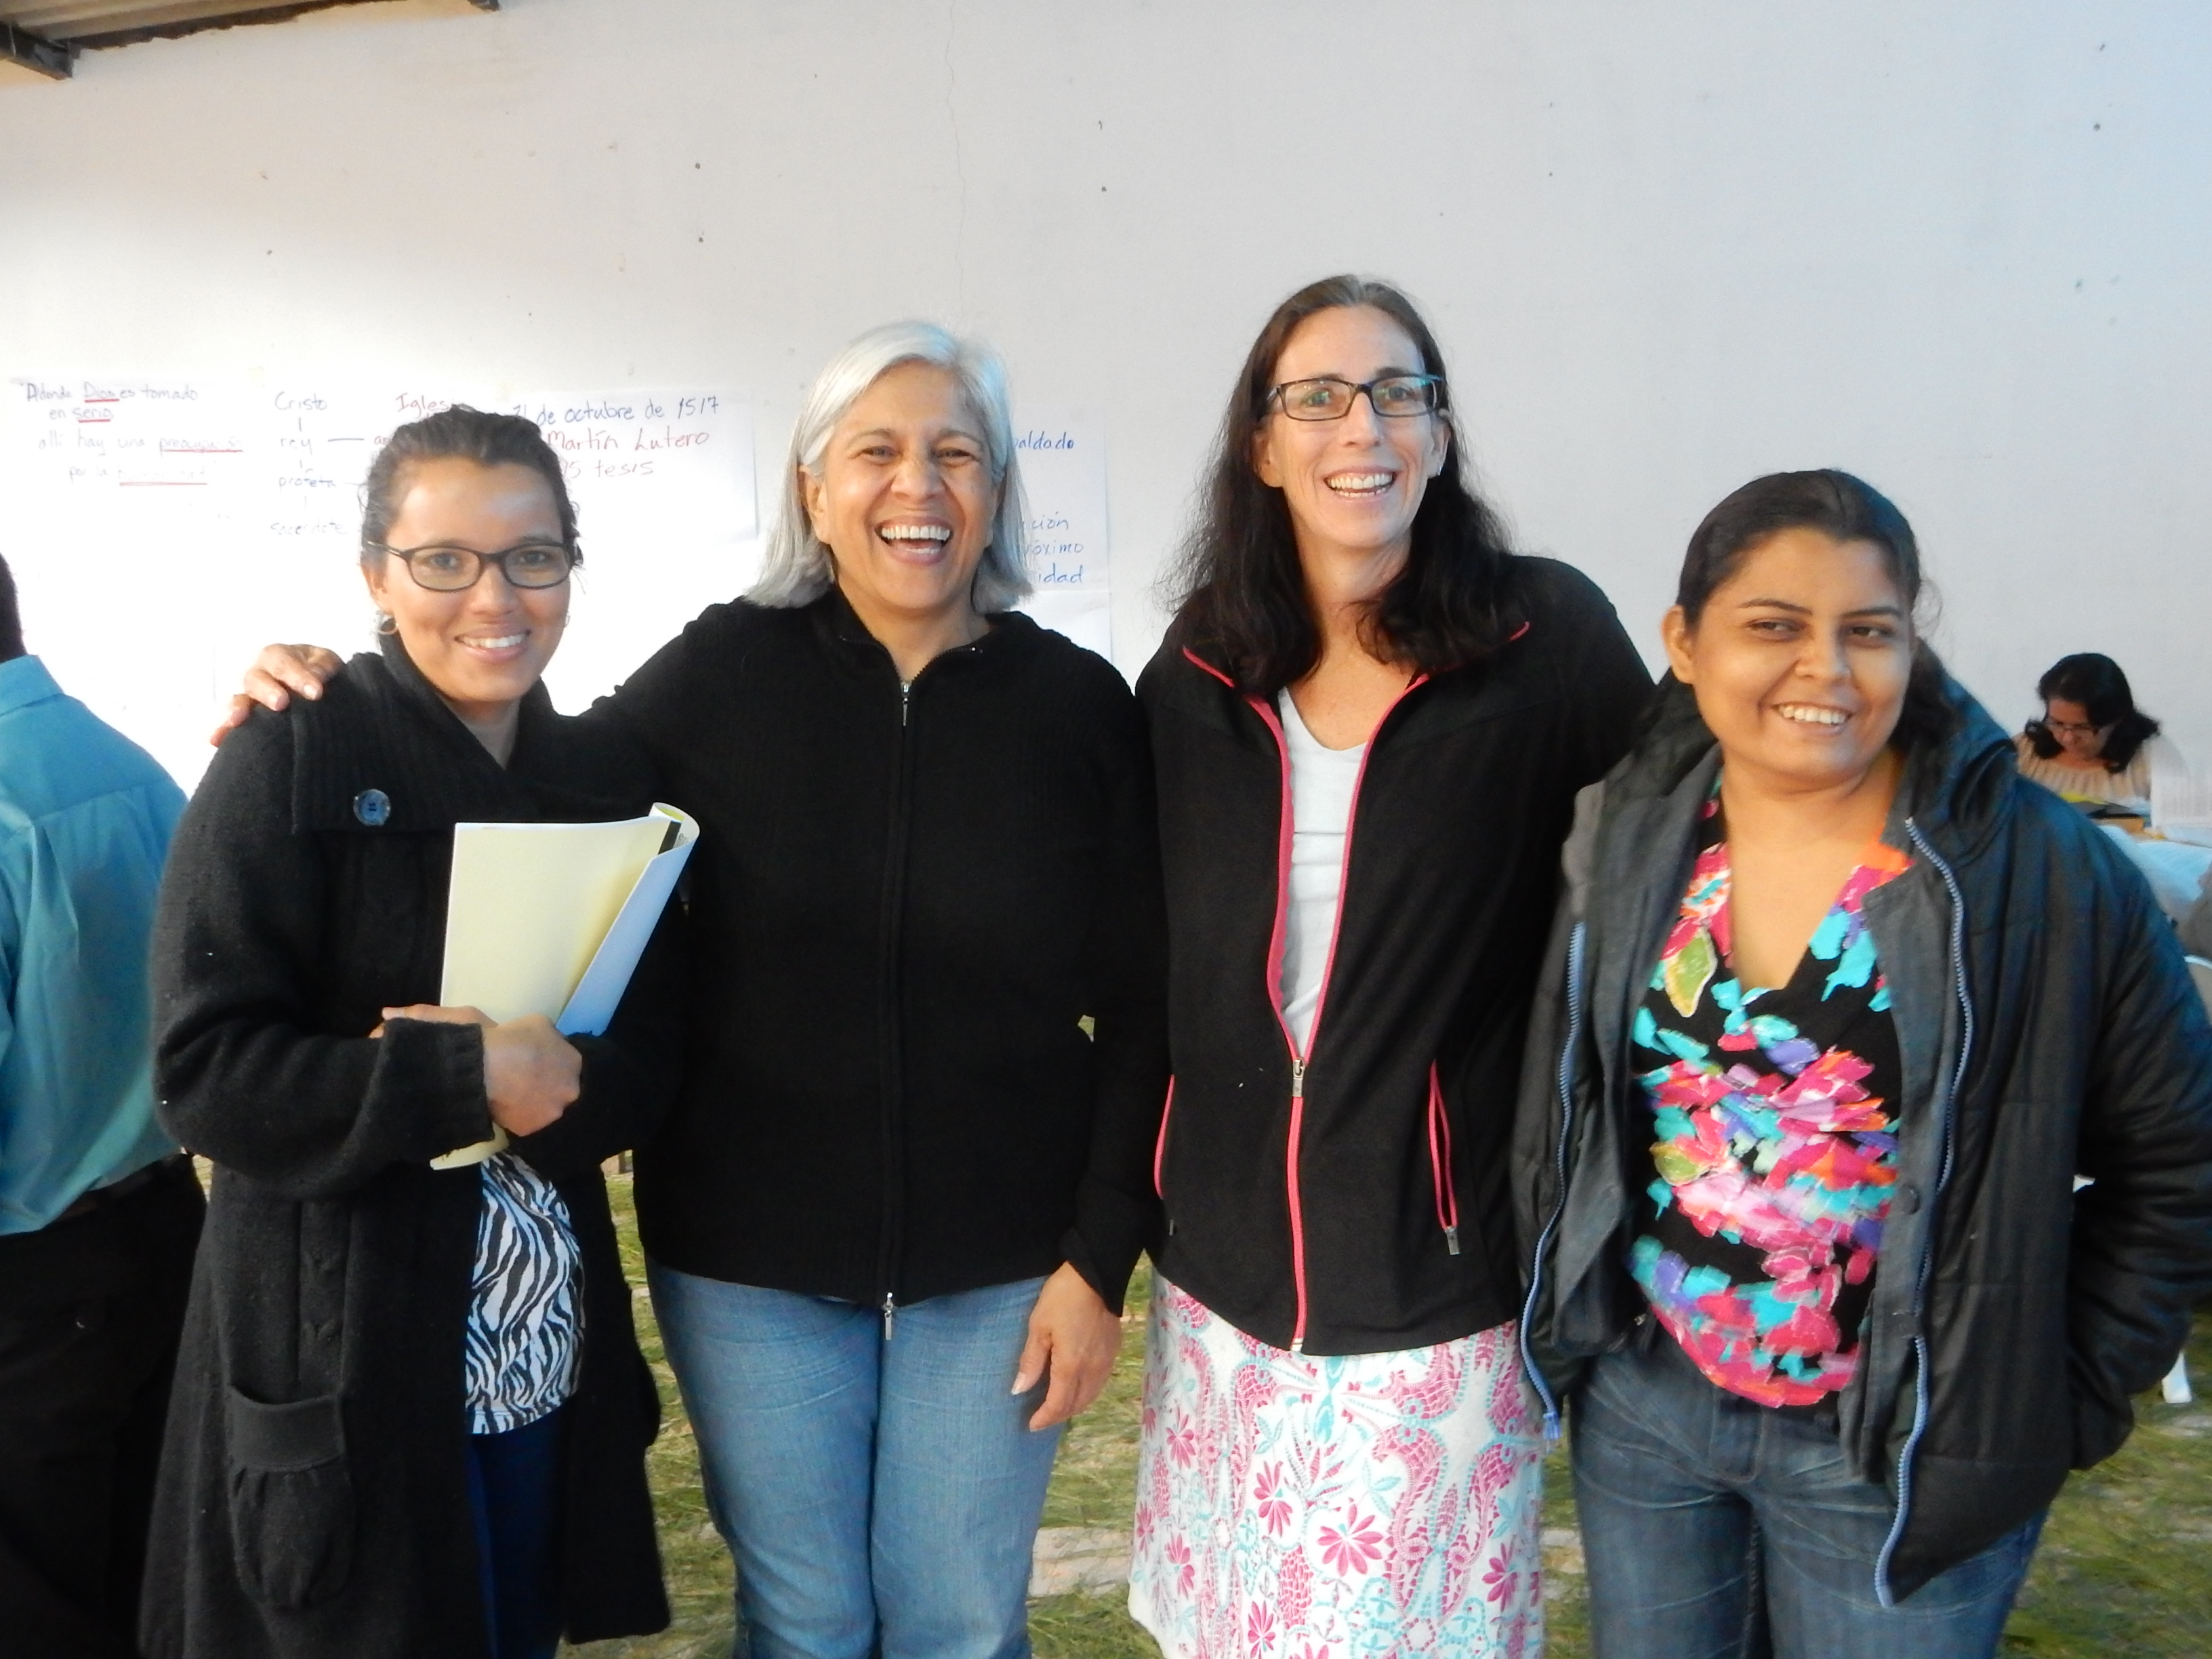 Left to right, Betzabé Reyes, Nidia Fonseca from the UBL, Presbyterian World Mission regional liaison Tracey King-Ortega, and Blanca Aida Rivas